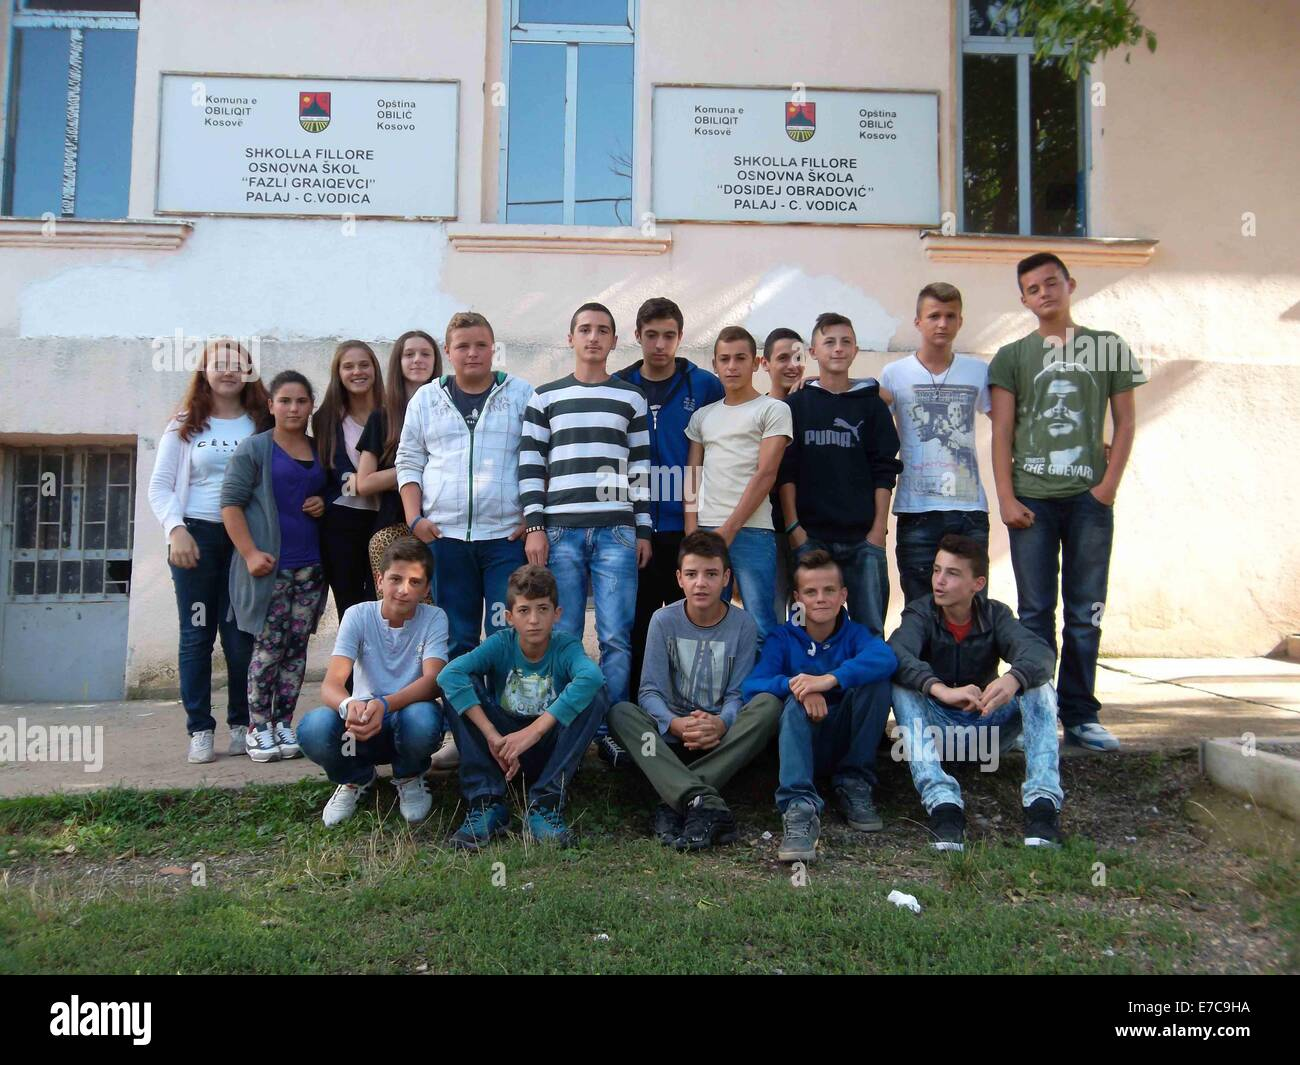 Obilic serbia 12th sep 2014 students of the albanian 9th grade obilic serbia 12th sep 2014 students of the albanian 9th grade pose sciox Images